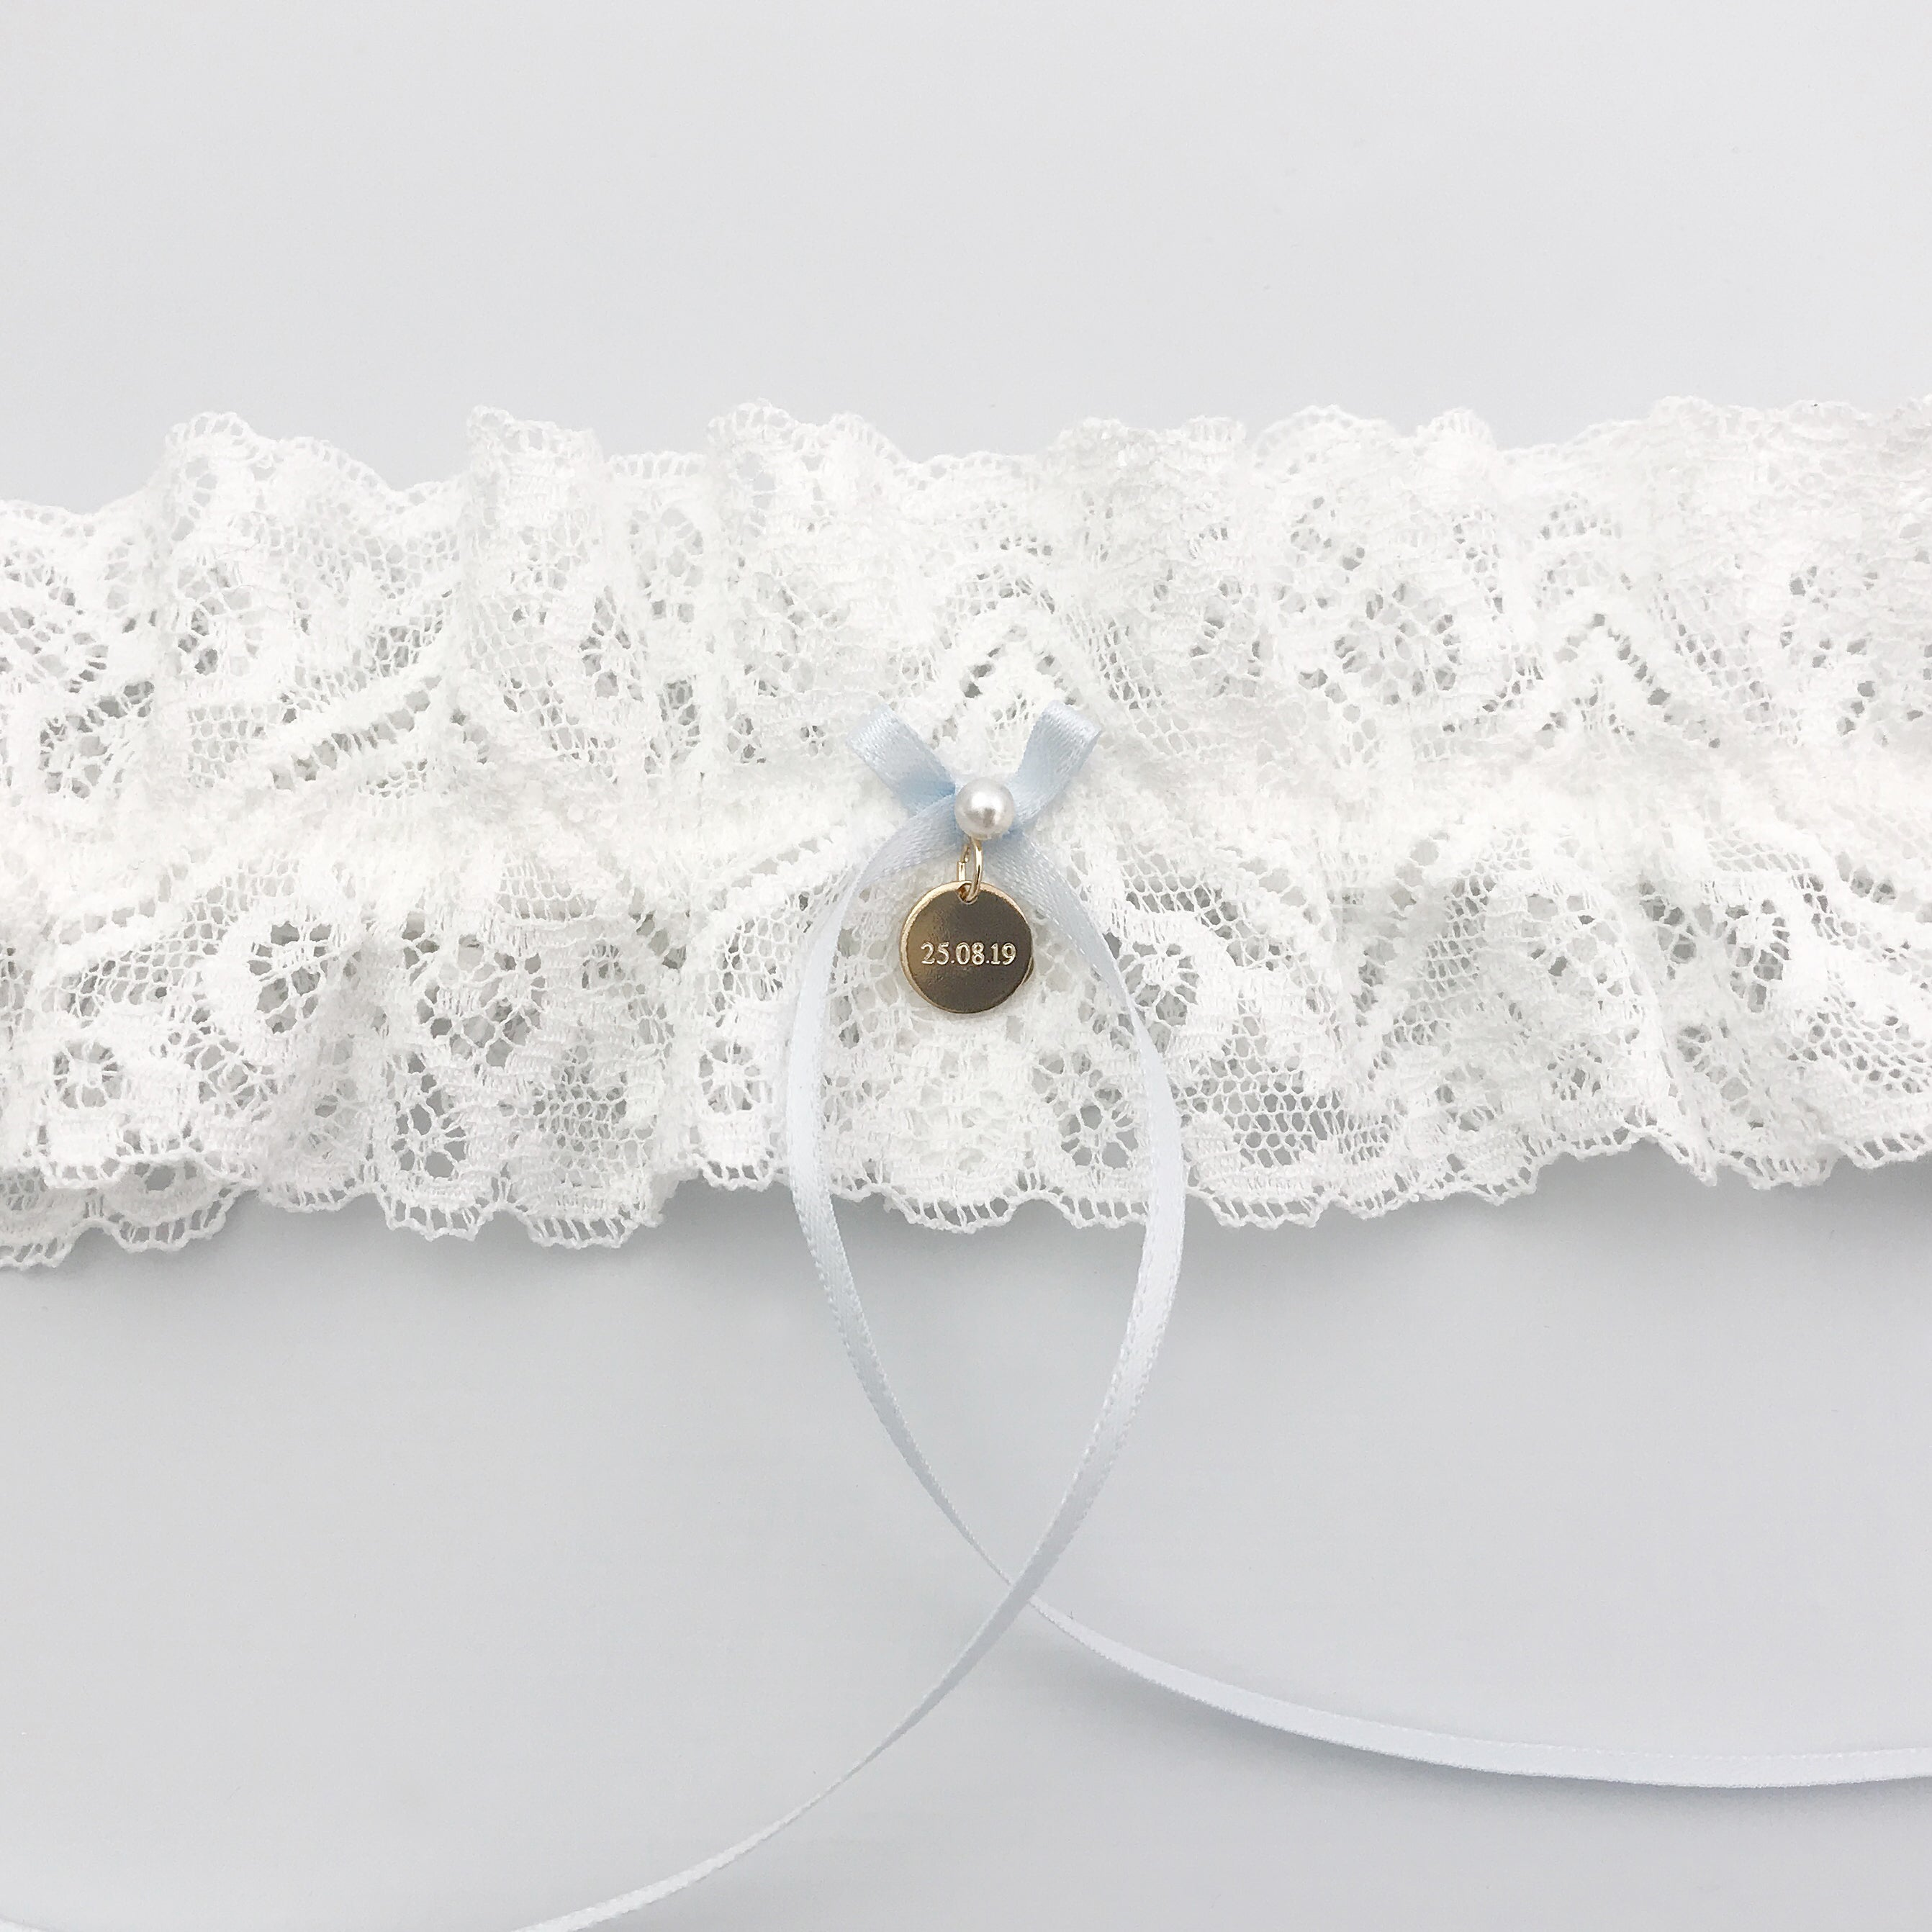 personalised garter with gold engraved charm